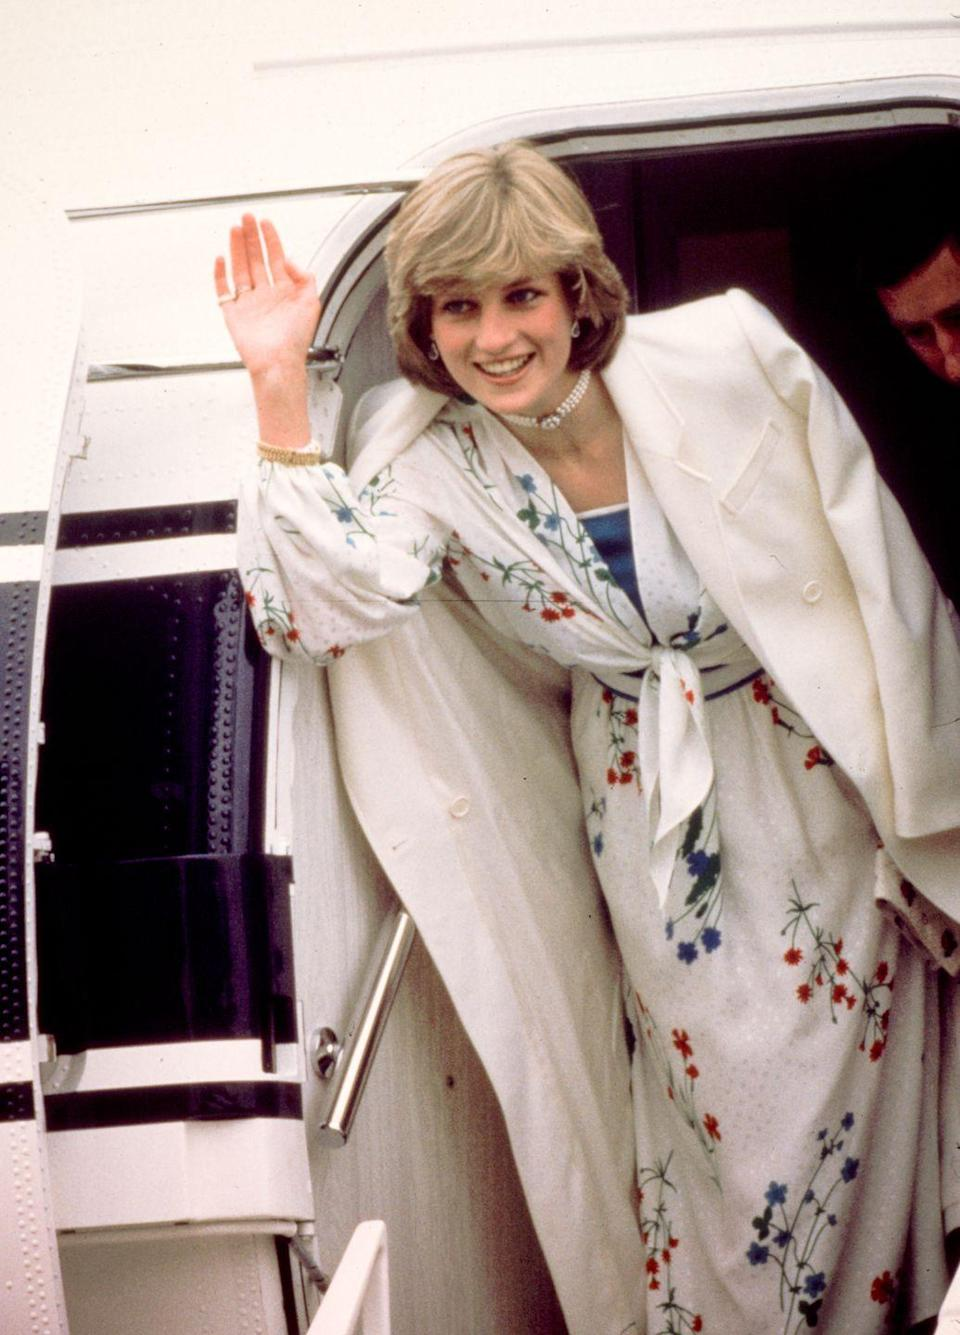 <p>Princess Diana looked chic in a Donald Campbell dress, long blazer and pearl choker when she and Prince Charles left for their honeymoon in August 1981. </p>